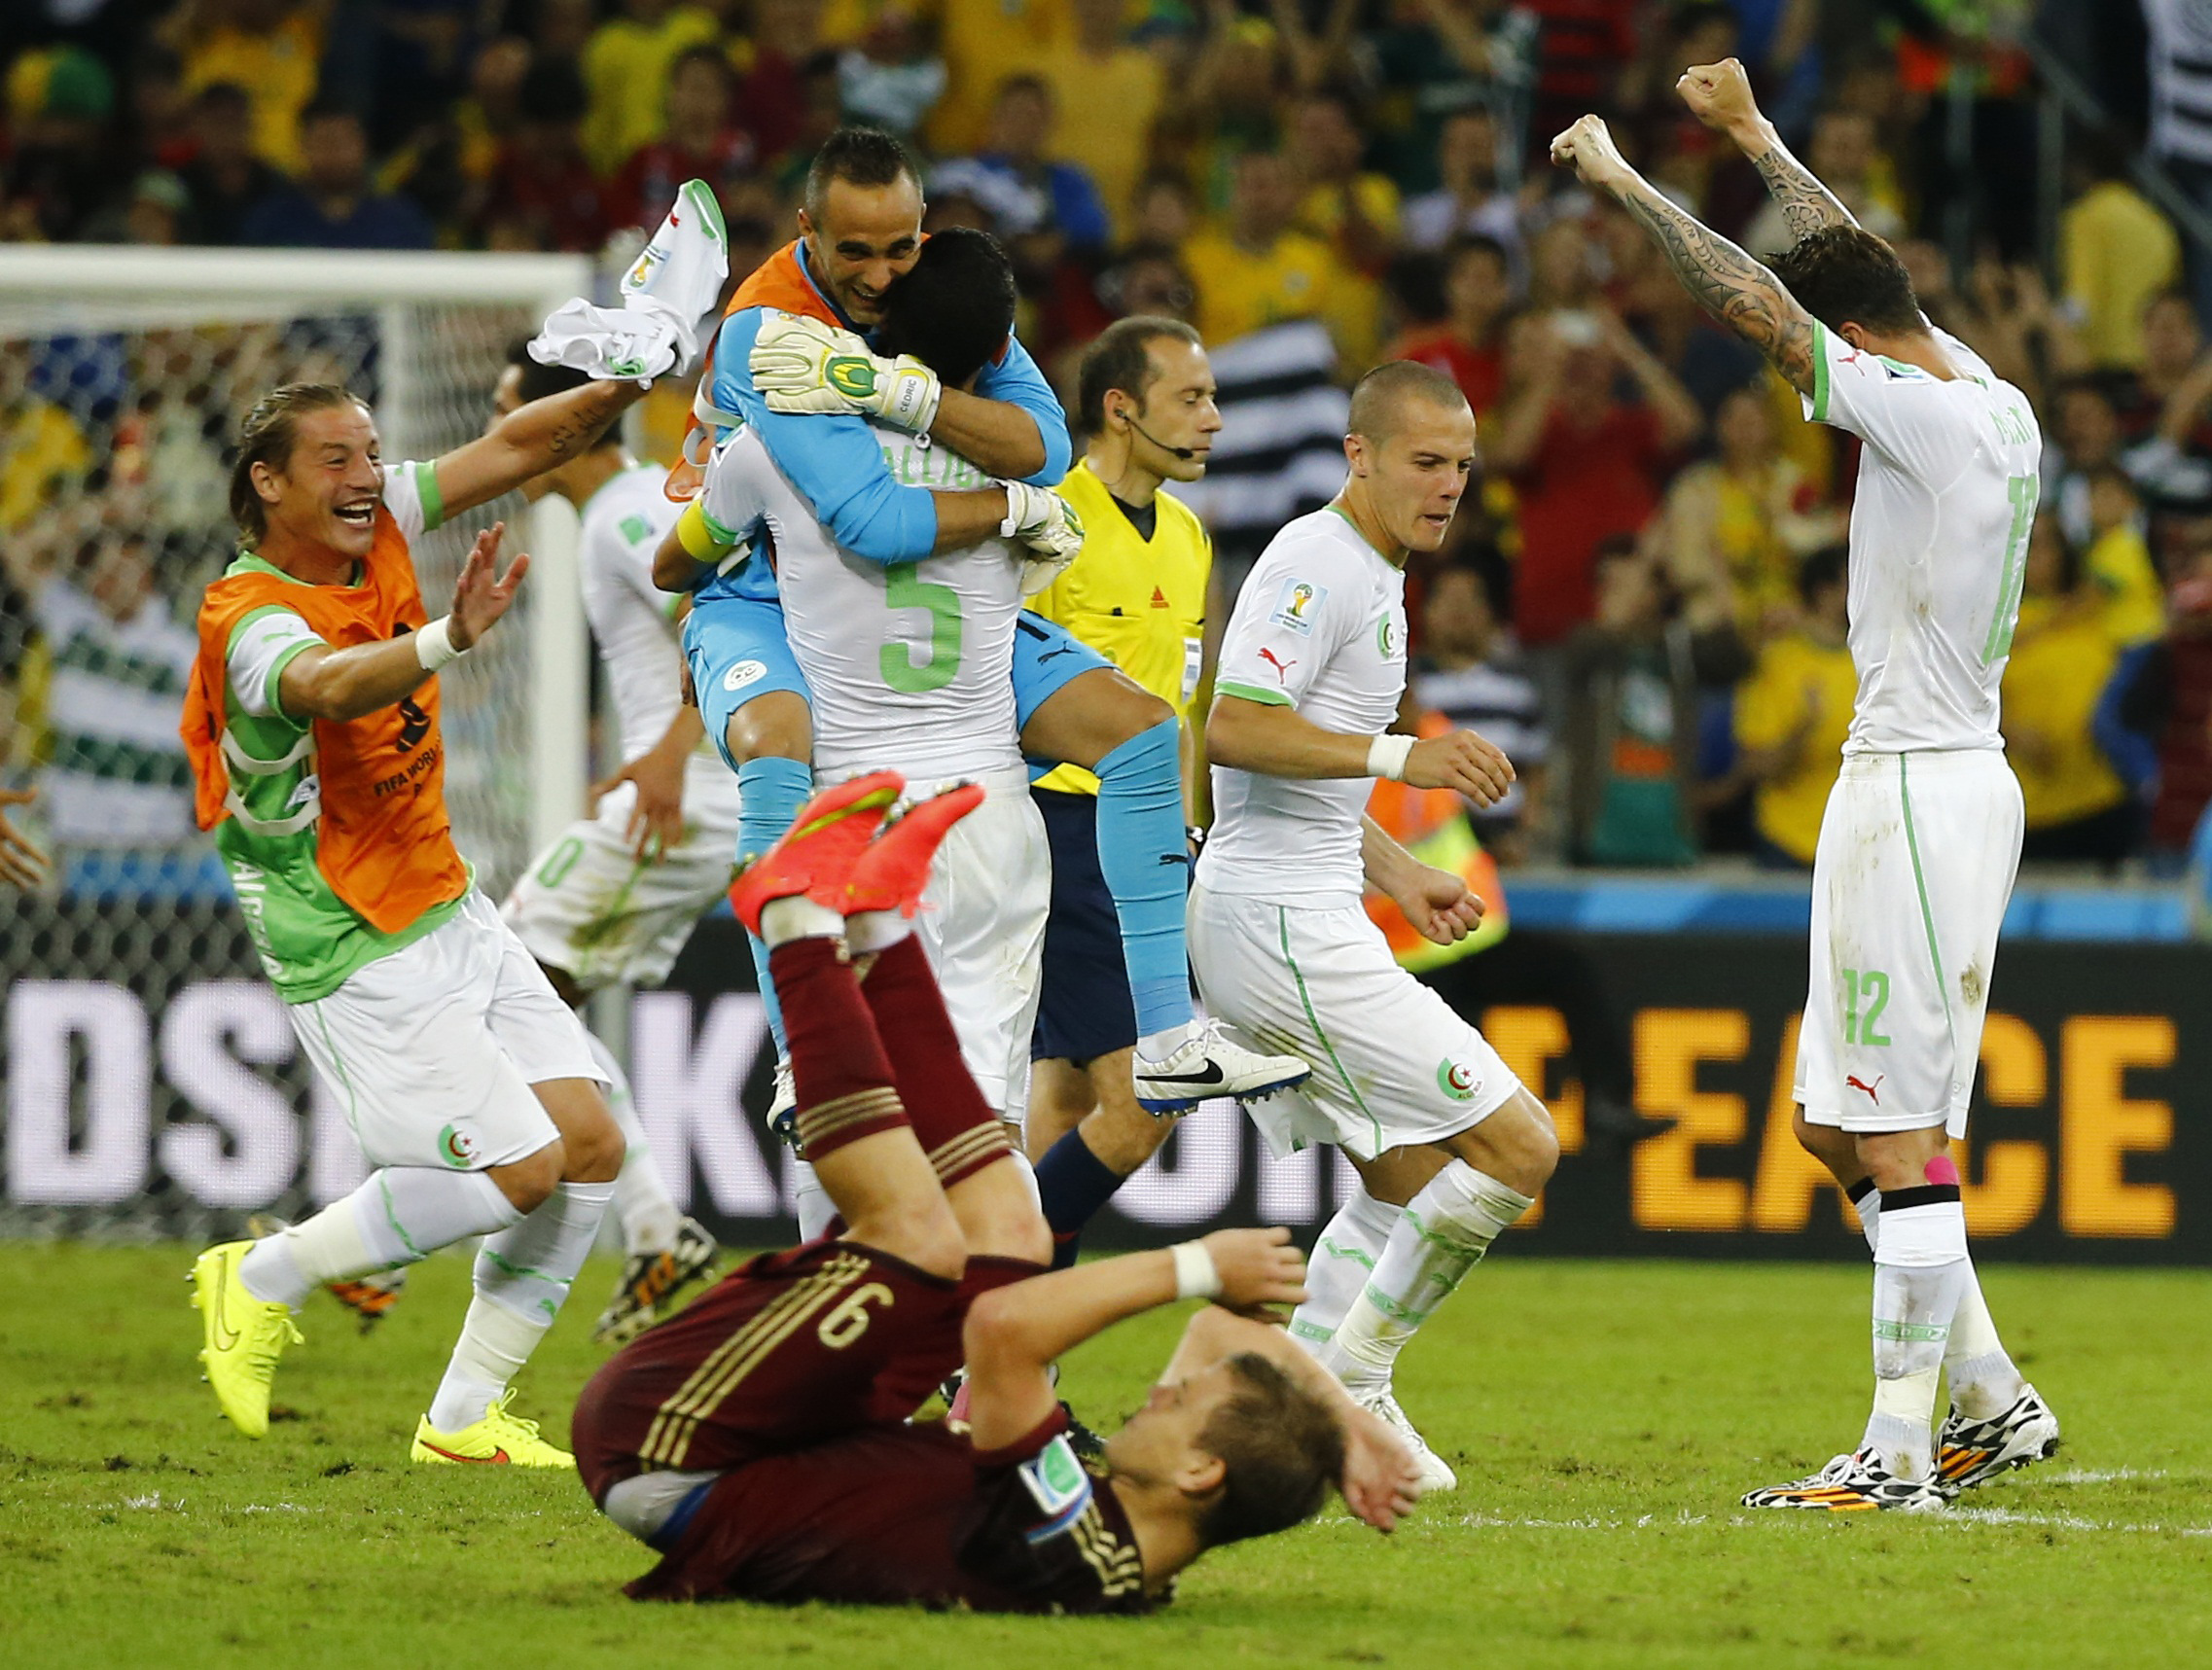 Russia's Kokorin reacts on the ground as Algeria's national soccer team players celebrate behind him at the end of their 2014 World Cup Group H soccer match at the Baixada arena in Curitiba